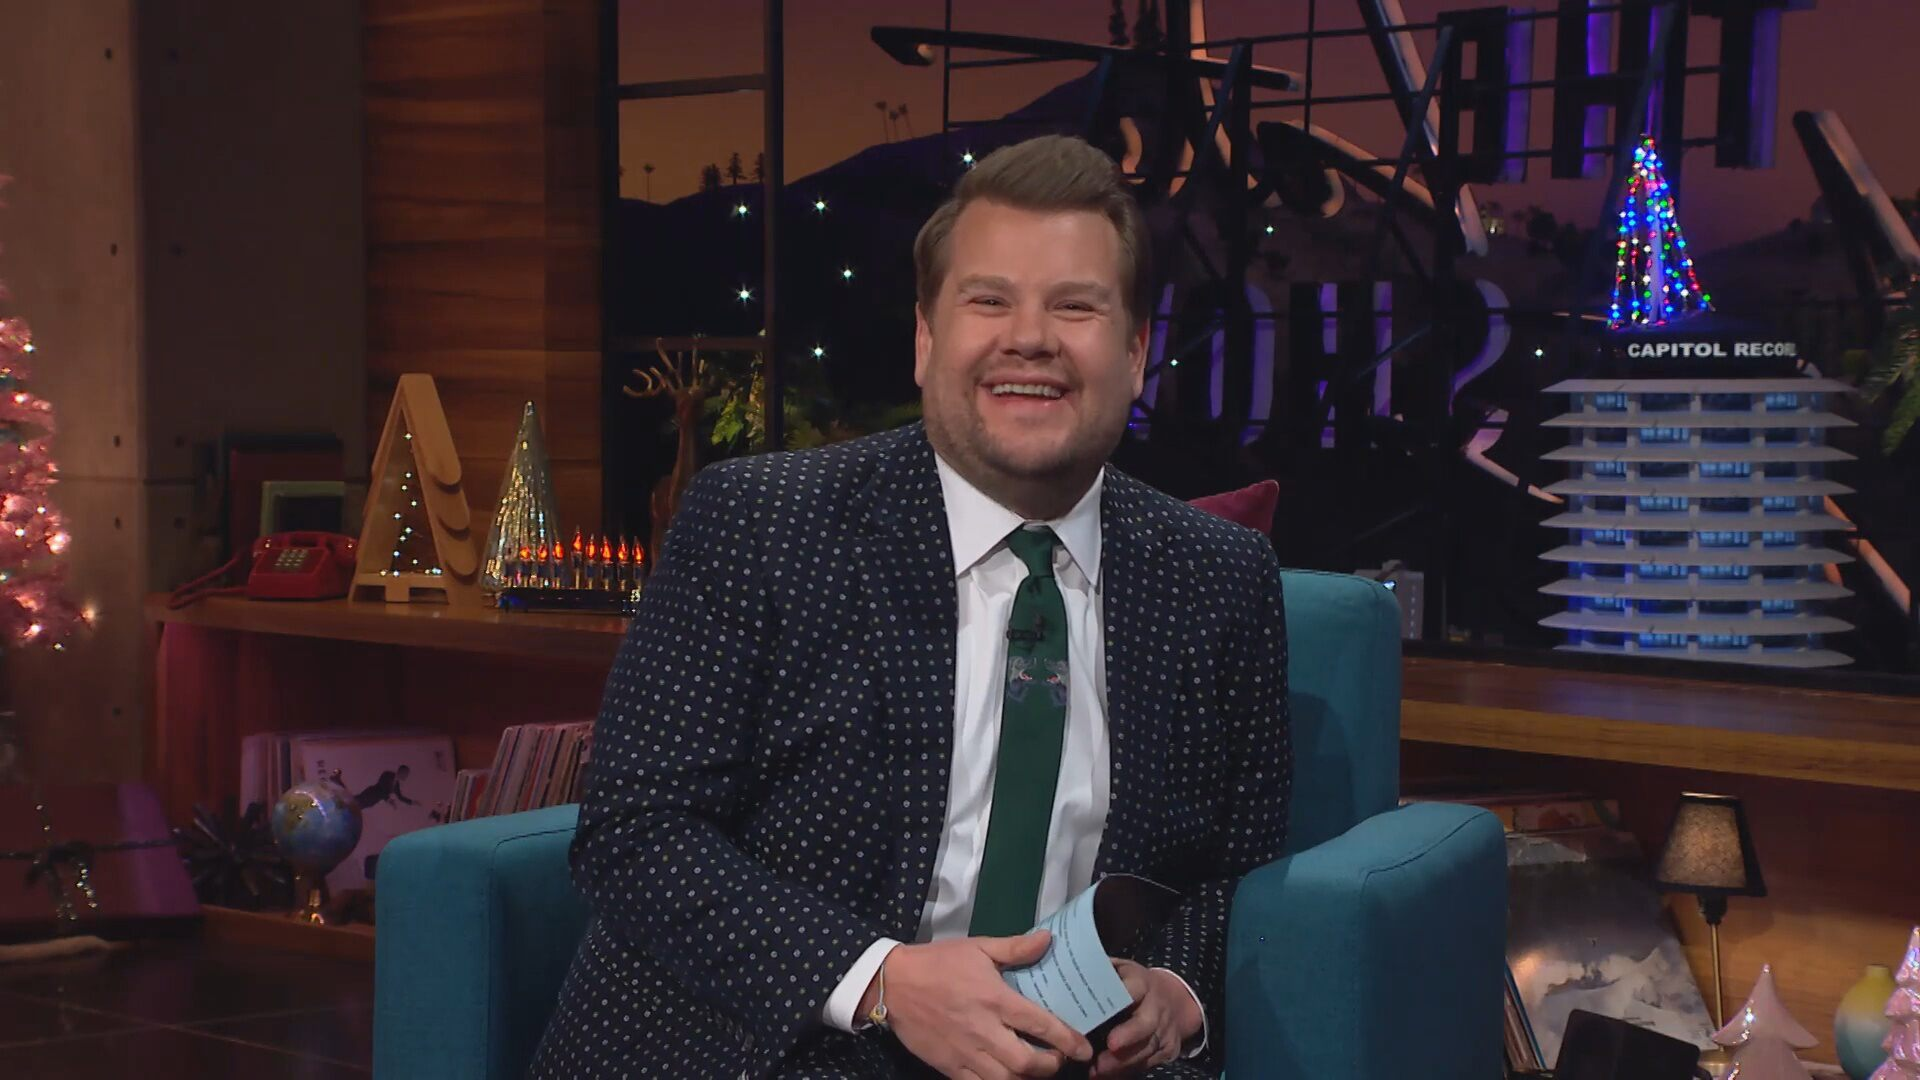 James Corden teases he may leave 'Late Late Show' and move back to UK